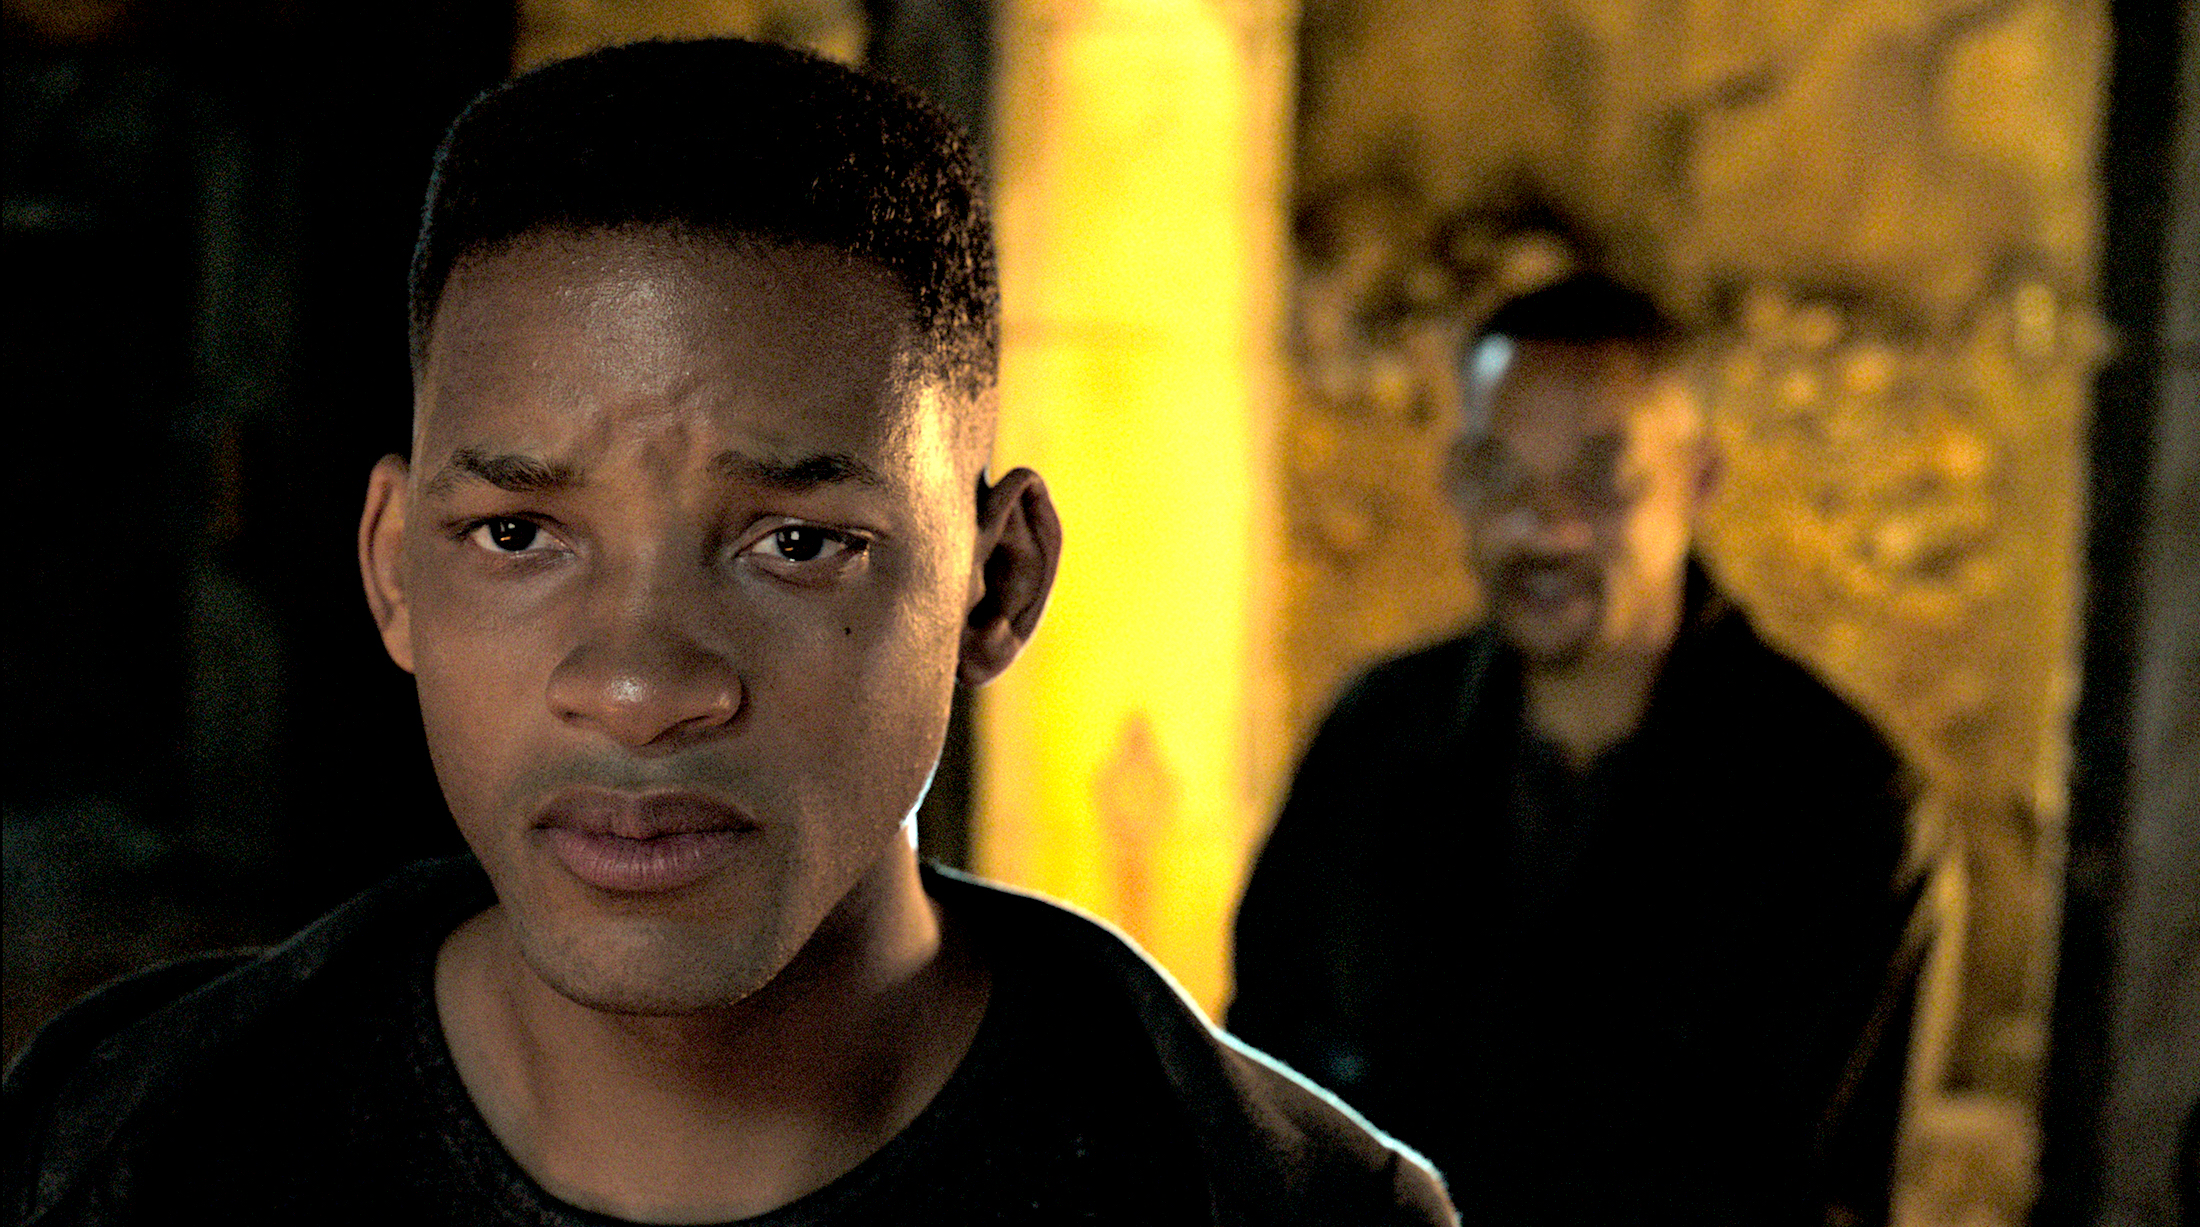 Will Smith stands behind a Young Will Smith who is near tears during an interrogation